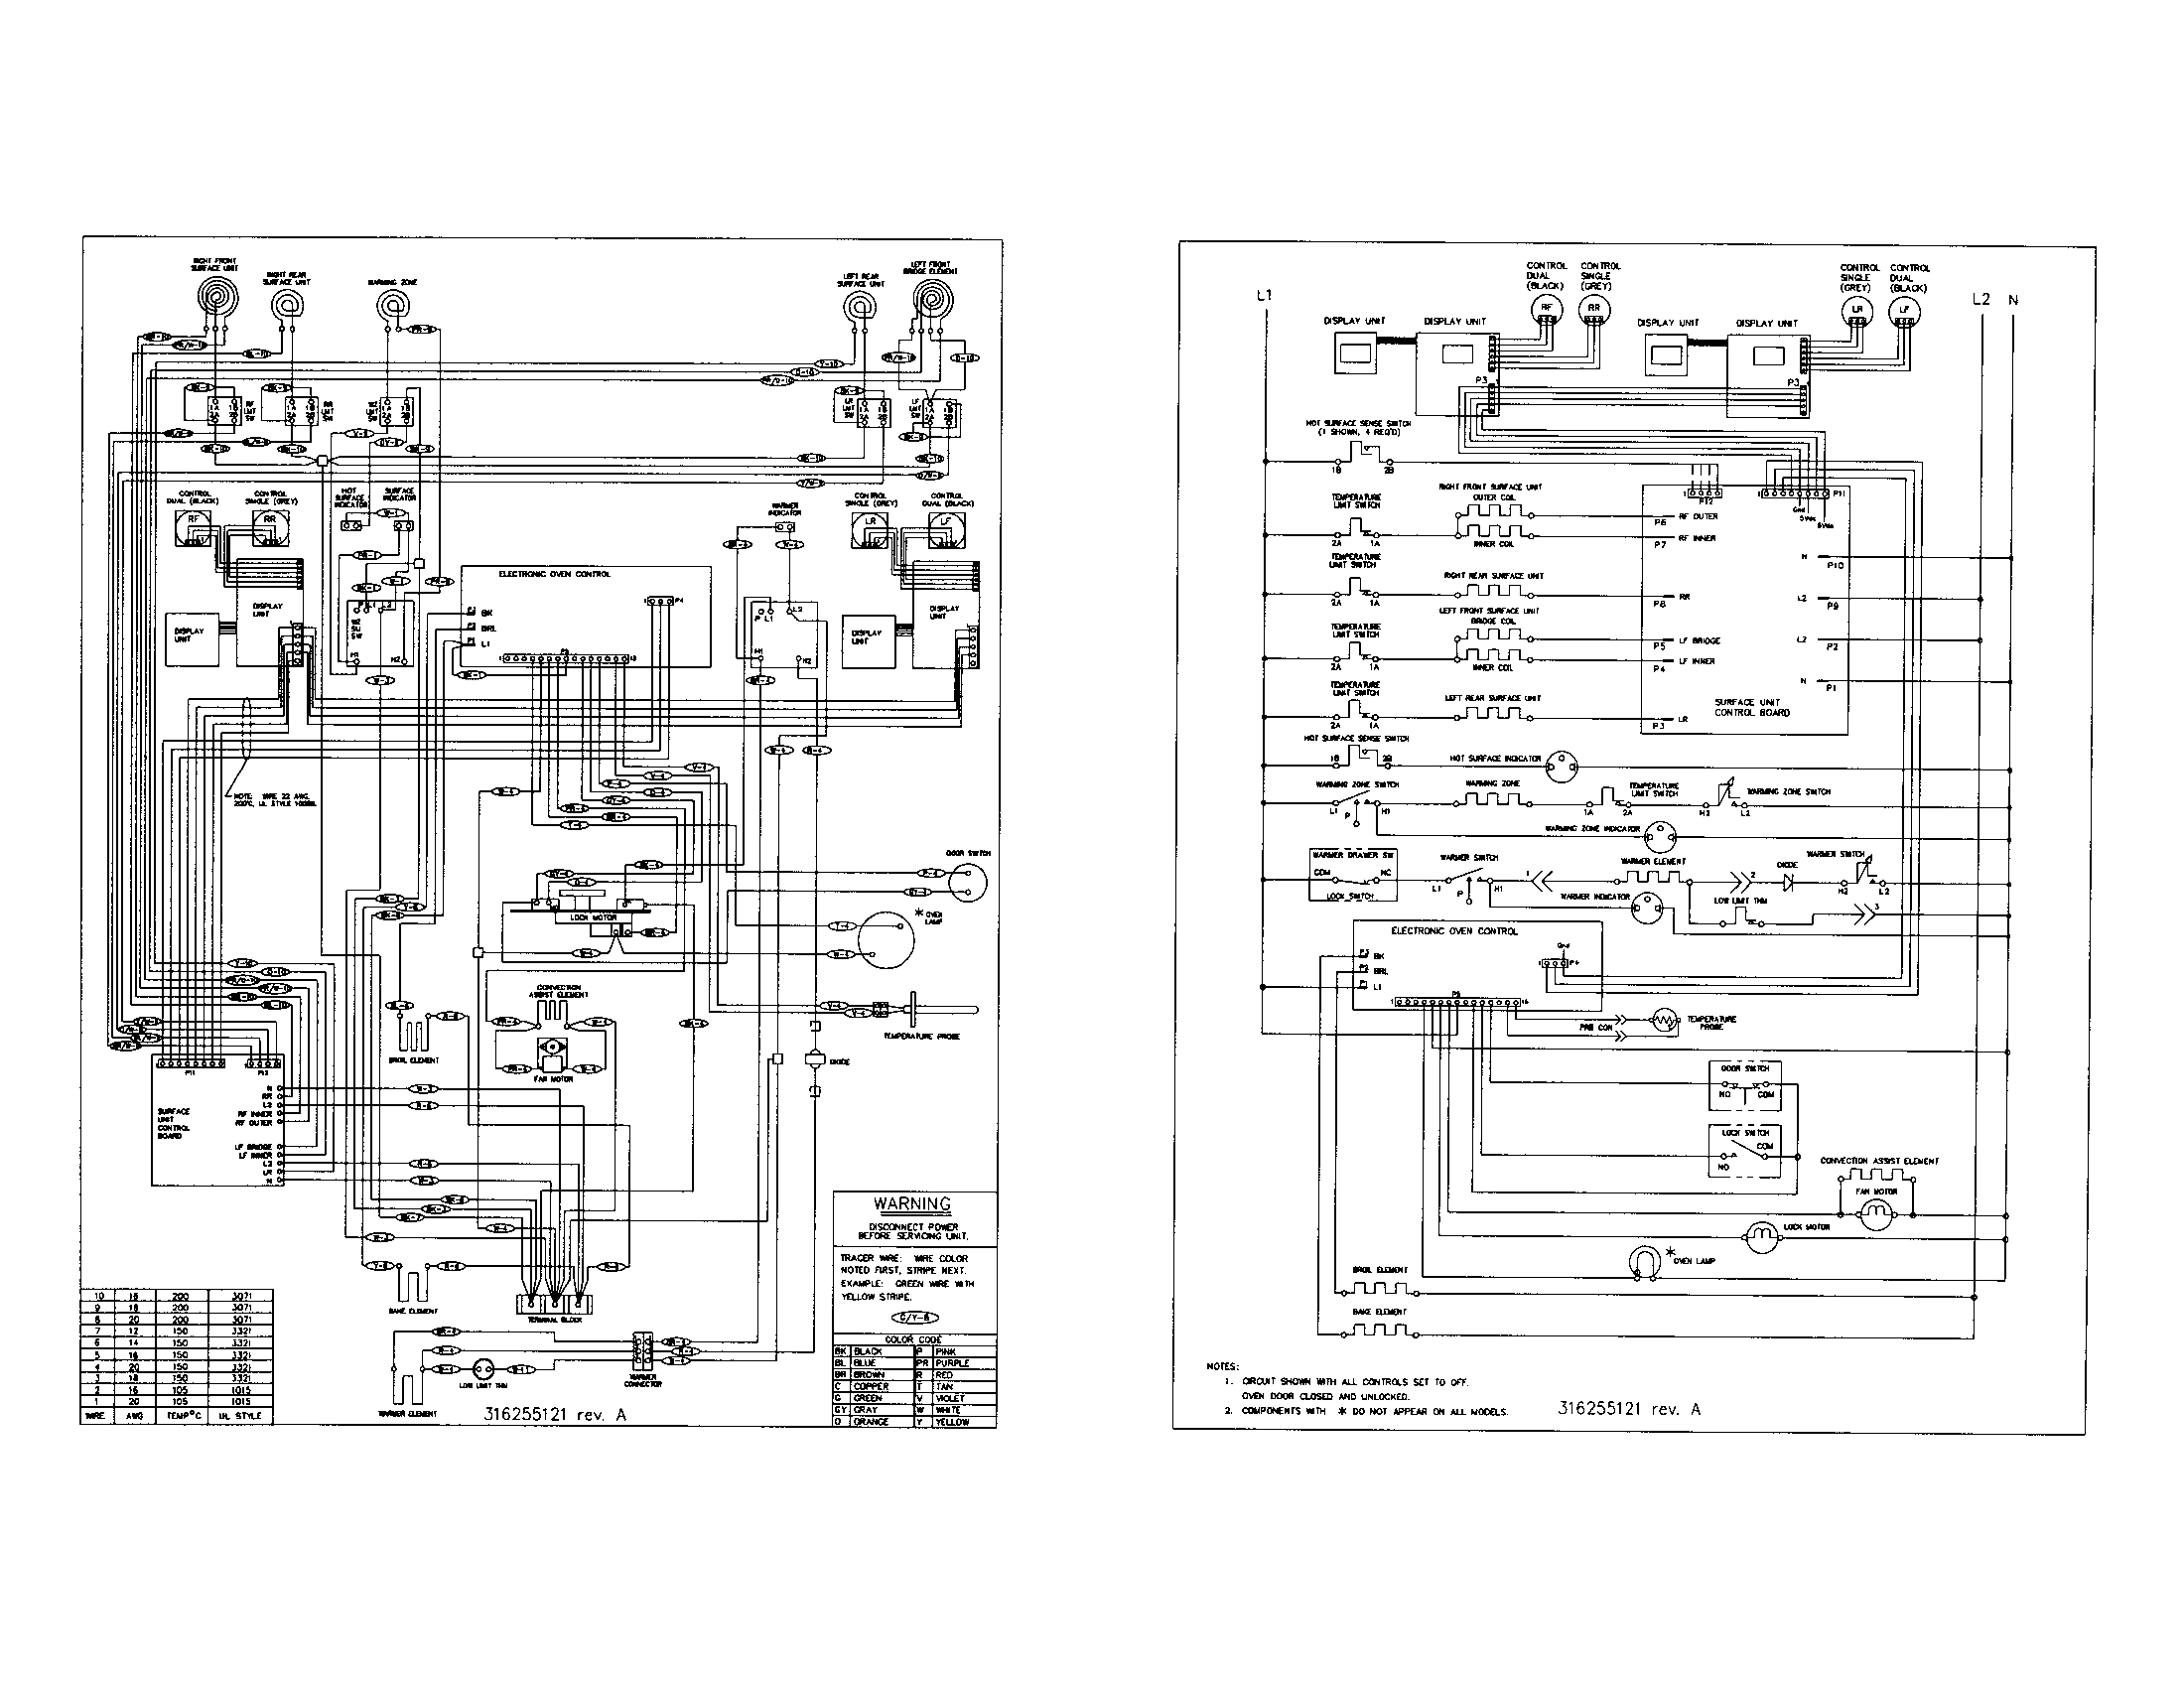 wiring diagram for ge range wiring wiring diagrams online ge wiring diagram ge image wiring diagram